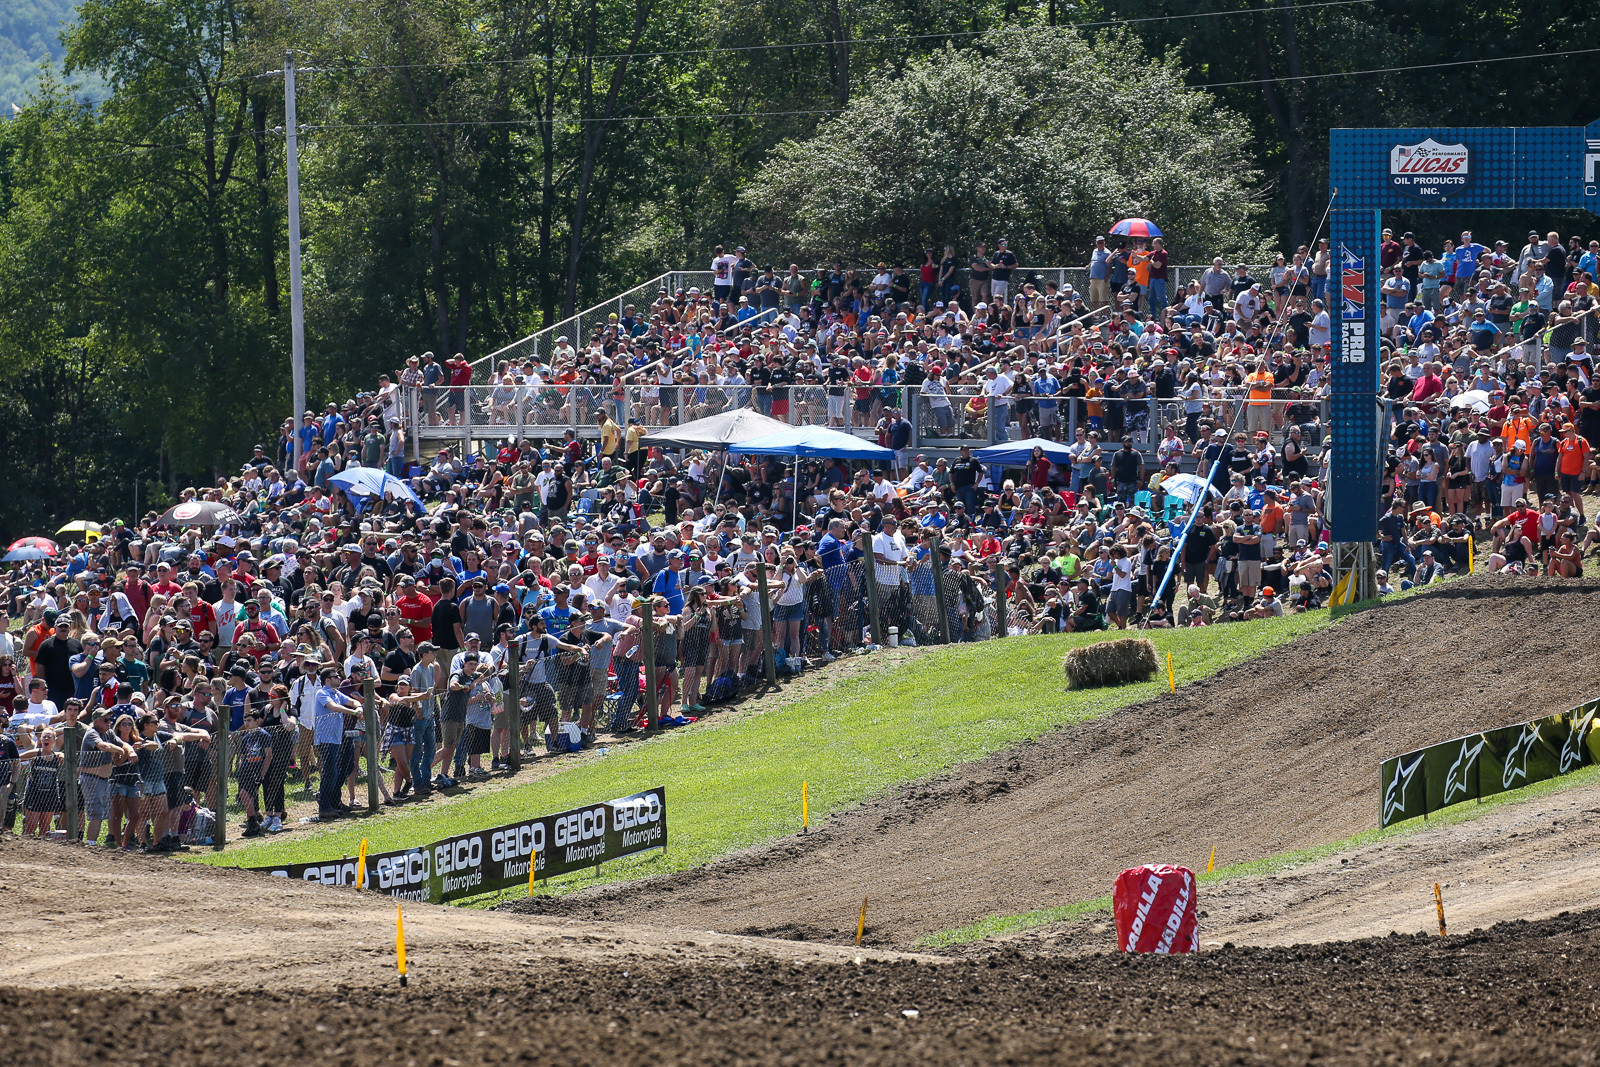 The Unadilla crowd came out strong on Saturday, despite not being able to come in ahead of time.